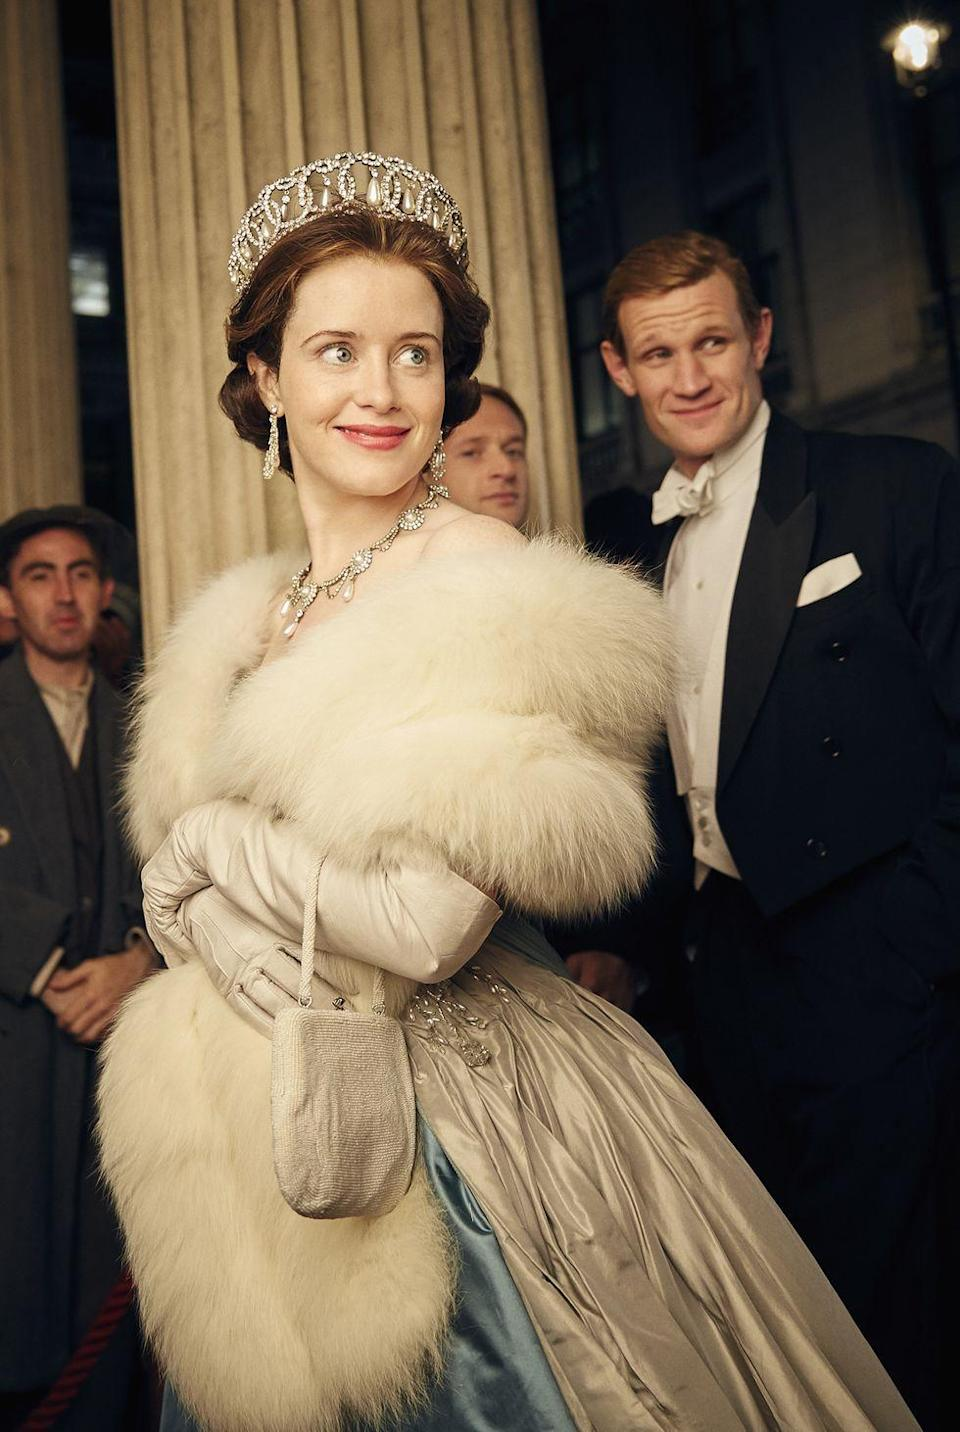 """<p>Foy told <em><a href=""""https://www.vanityfair.com/hollywood/2016/11/the-crown-clair-foy-queen-elizabeth-interview"""" rel=""""nofollow noopener"""" target=""""_blank"""" data-ylk=""""slk:Vanity Fair"""" class=""""link rapid-noclick-resp"""">Vanity Fair</a></em> in 2016 that the notoriously uncomfortable undergarment actually helped her get into her role. """"I'd just had a baby when I started filming, so I had to wear a proper <span class=""""redactor-unlink"""">corset</span> because I was about five dress sizes bigger than I normally am. The corset helps you not slouch. Now we're doing the second series. I'm not wearing it anymore, but it stays with you, that posture, and being a lady.""""</p>"""